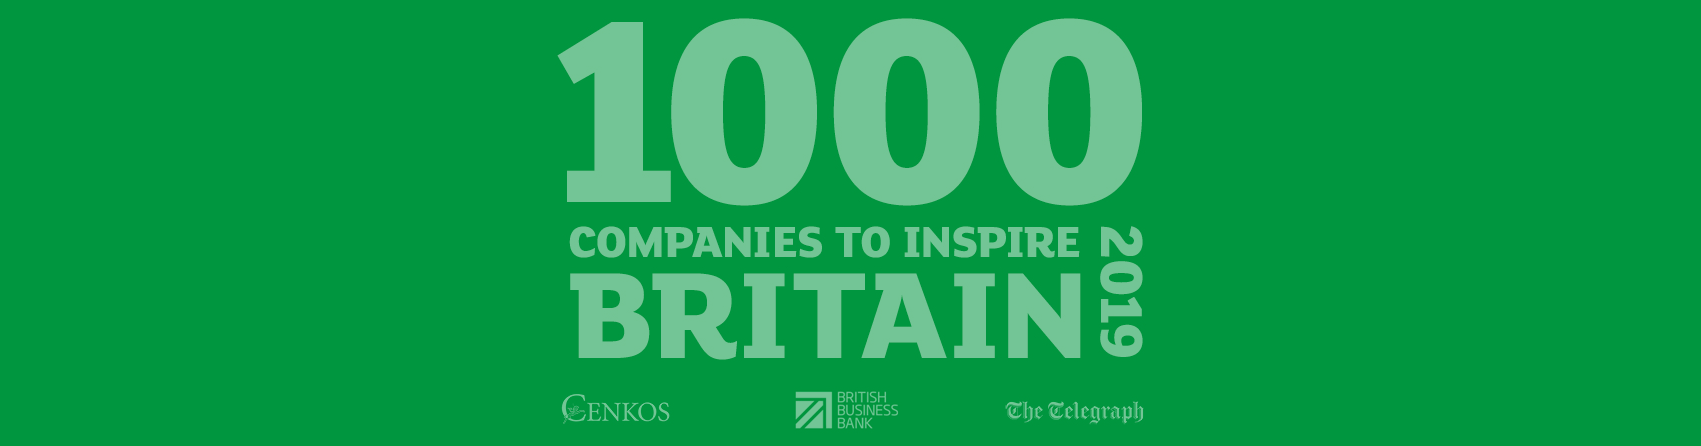 Adarma identified in London Stock Exchange Group's '1000 Companies to Inspire Britain' 2019 report image